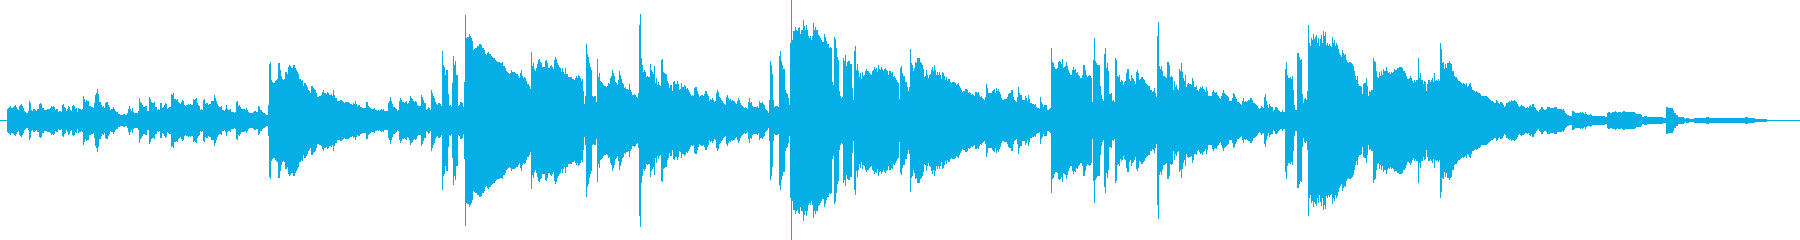 Bright and sparkling waltz BGM's reproduced waveform